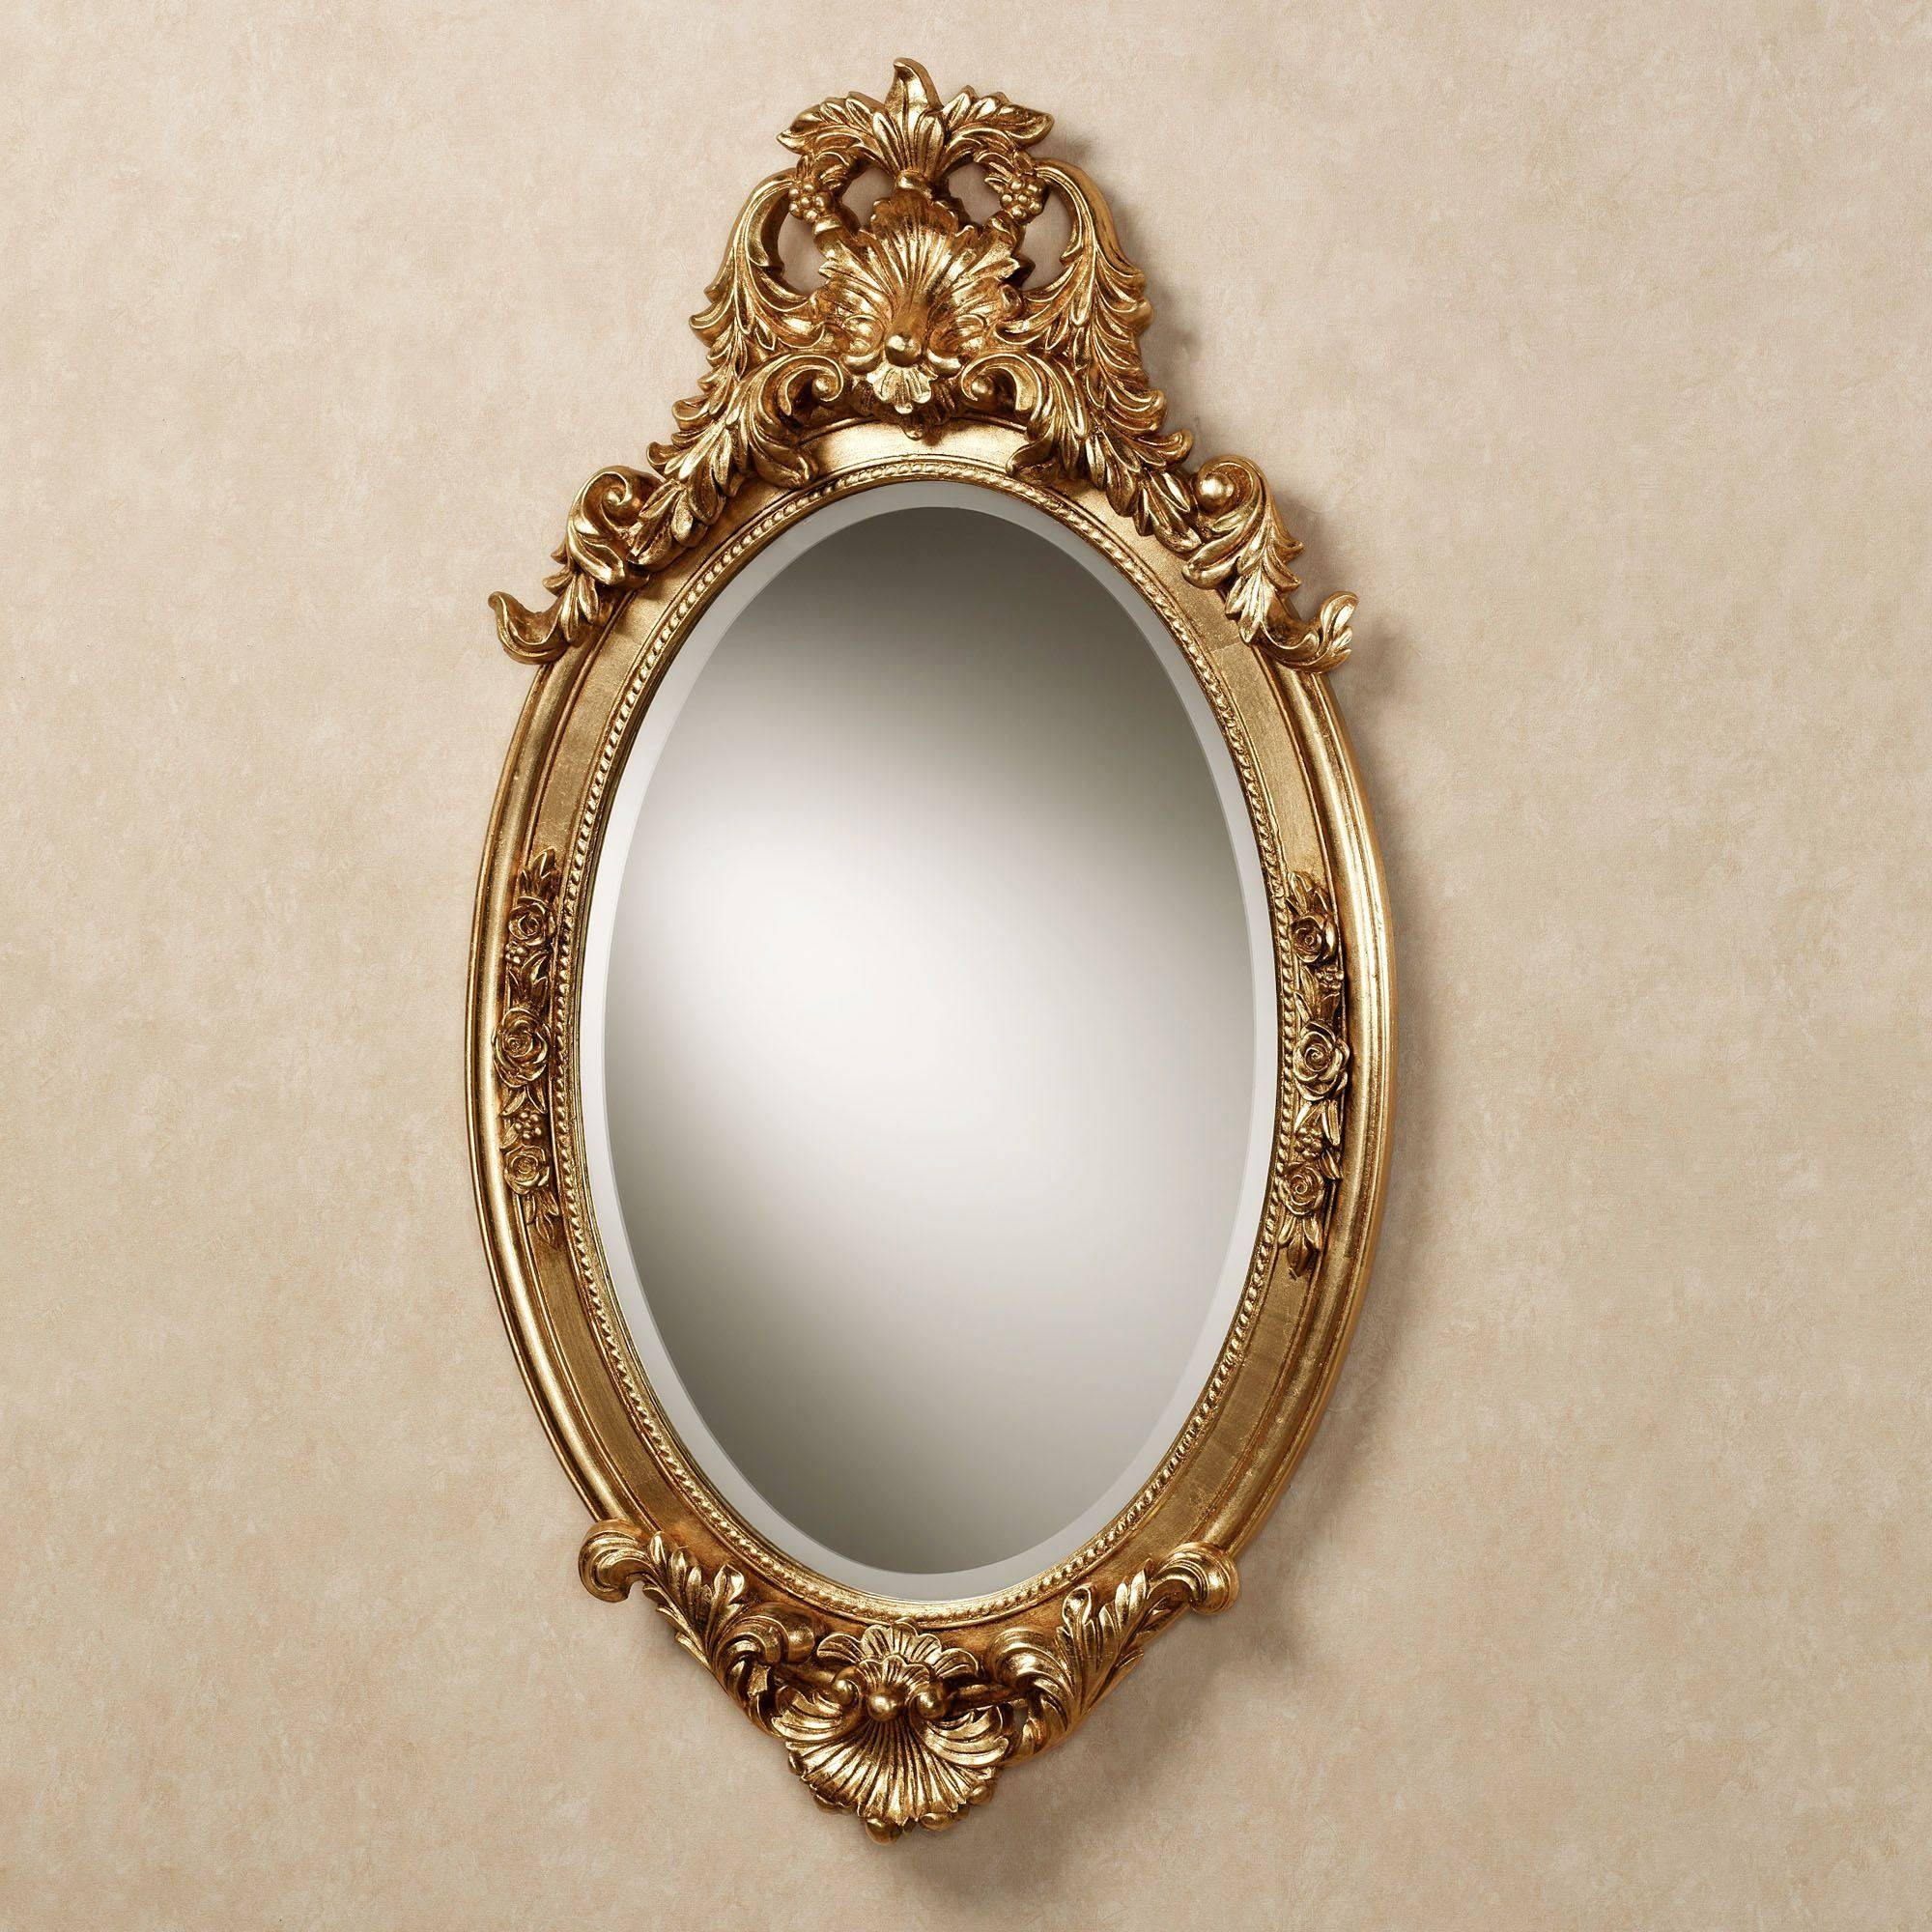 Hallandale Acanthus Leaf Oval Wall Mirror with Antique Gold Mirrors (Image 16 of 25)